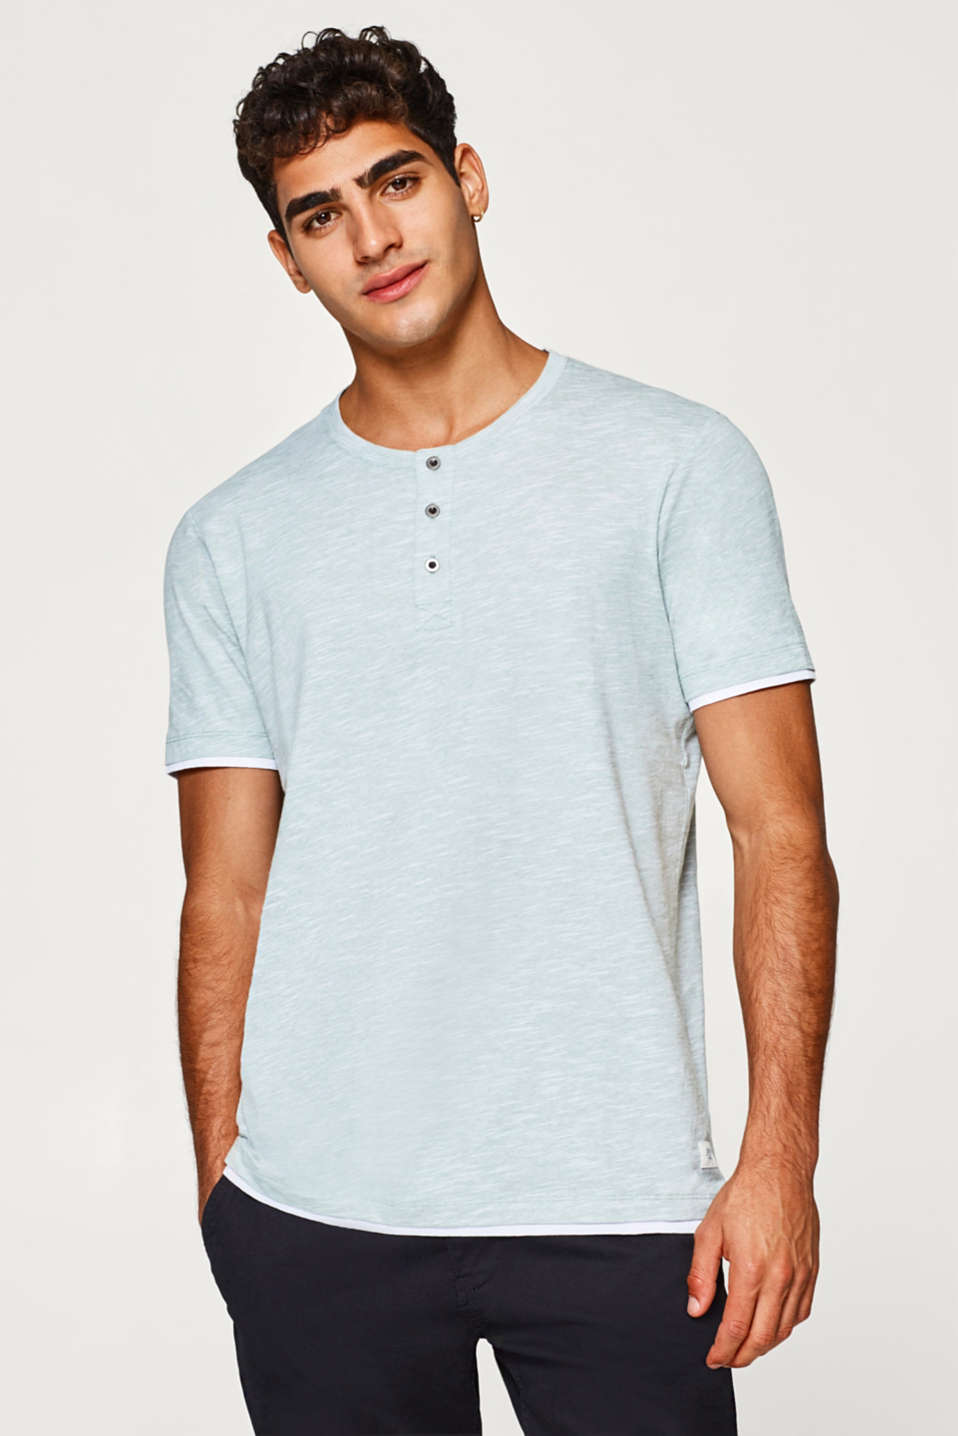 edc - Slub jersey Henley top, 100% cotton